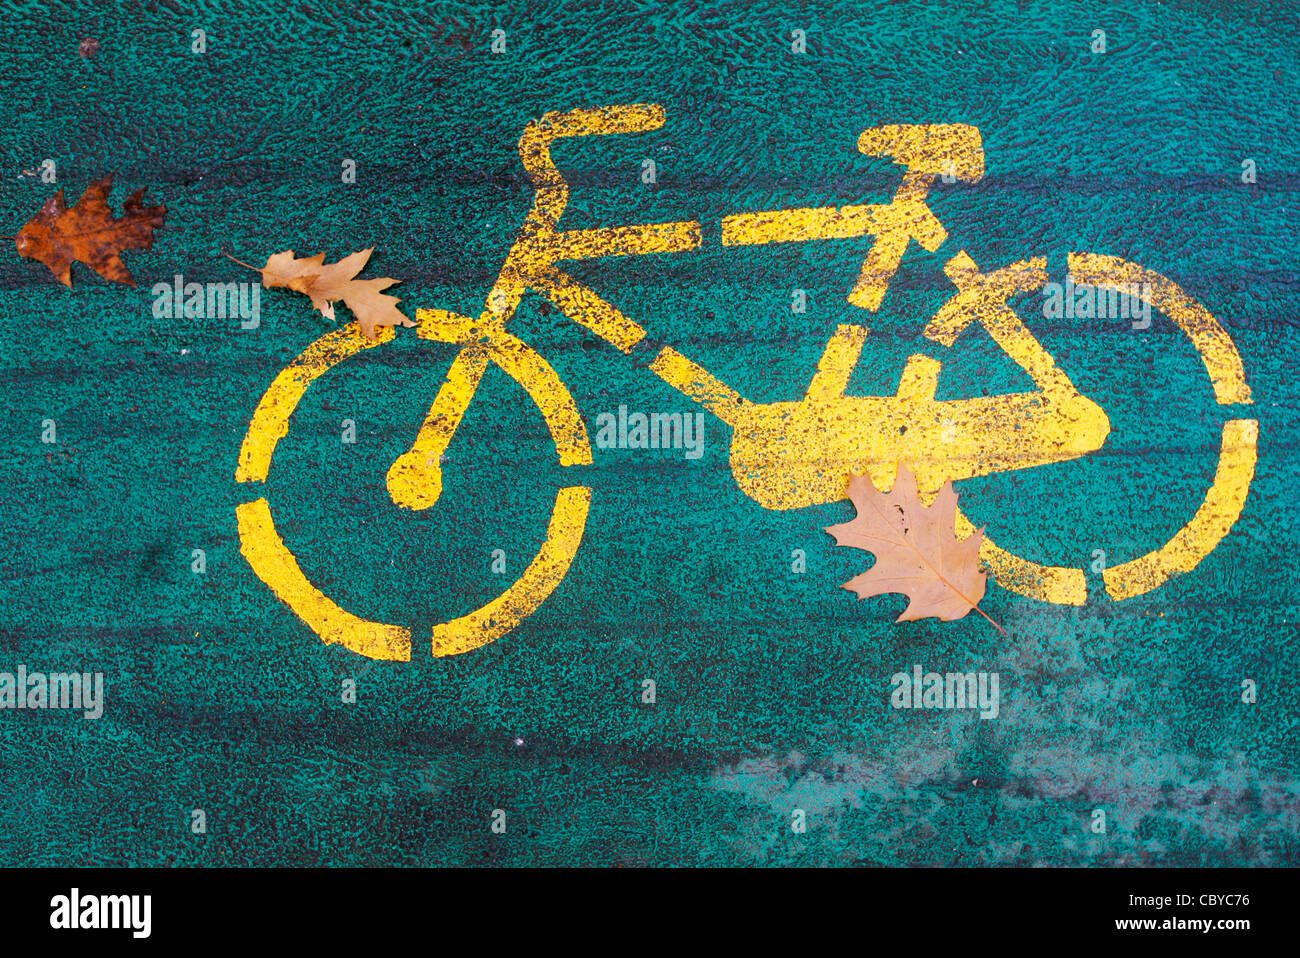 Detail of a bicycle lane in a park with autumn leaves - Stock Image